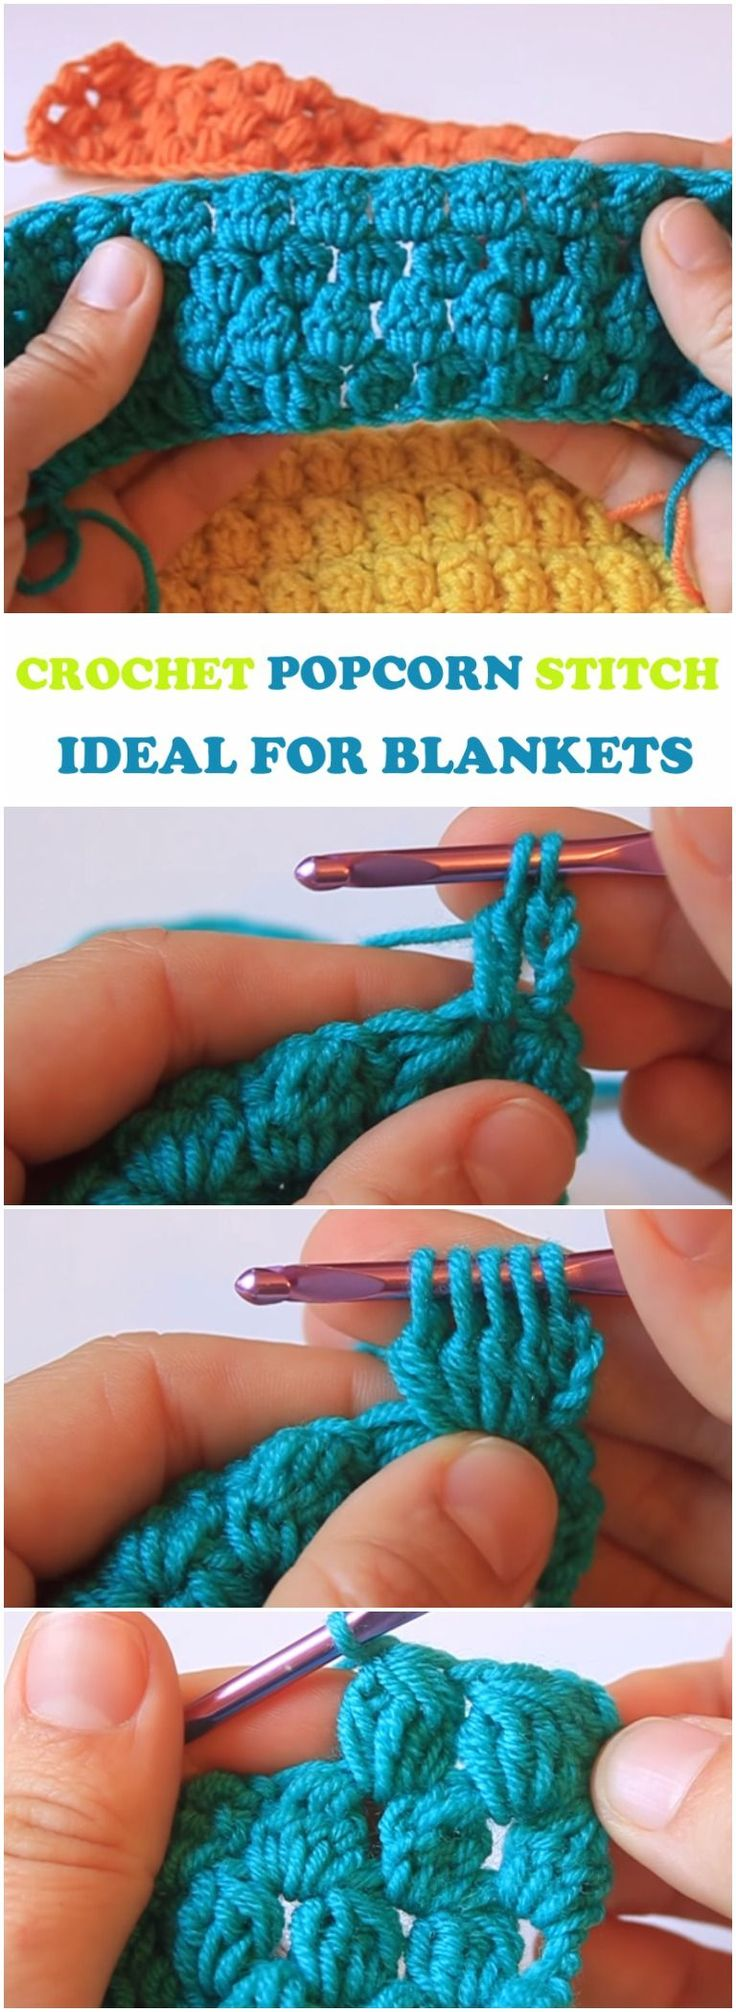 Learn To Crochet Popcorn Stitch Ideal For Blankets